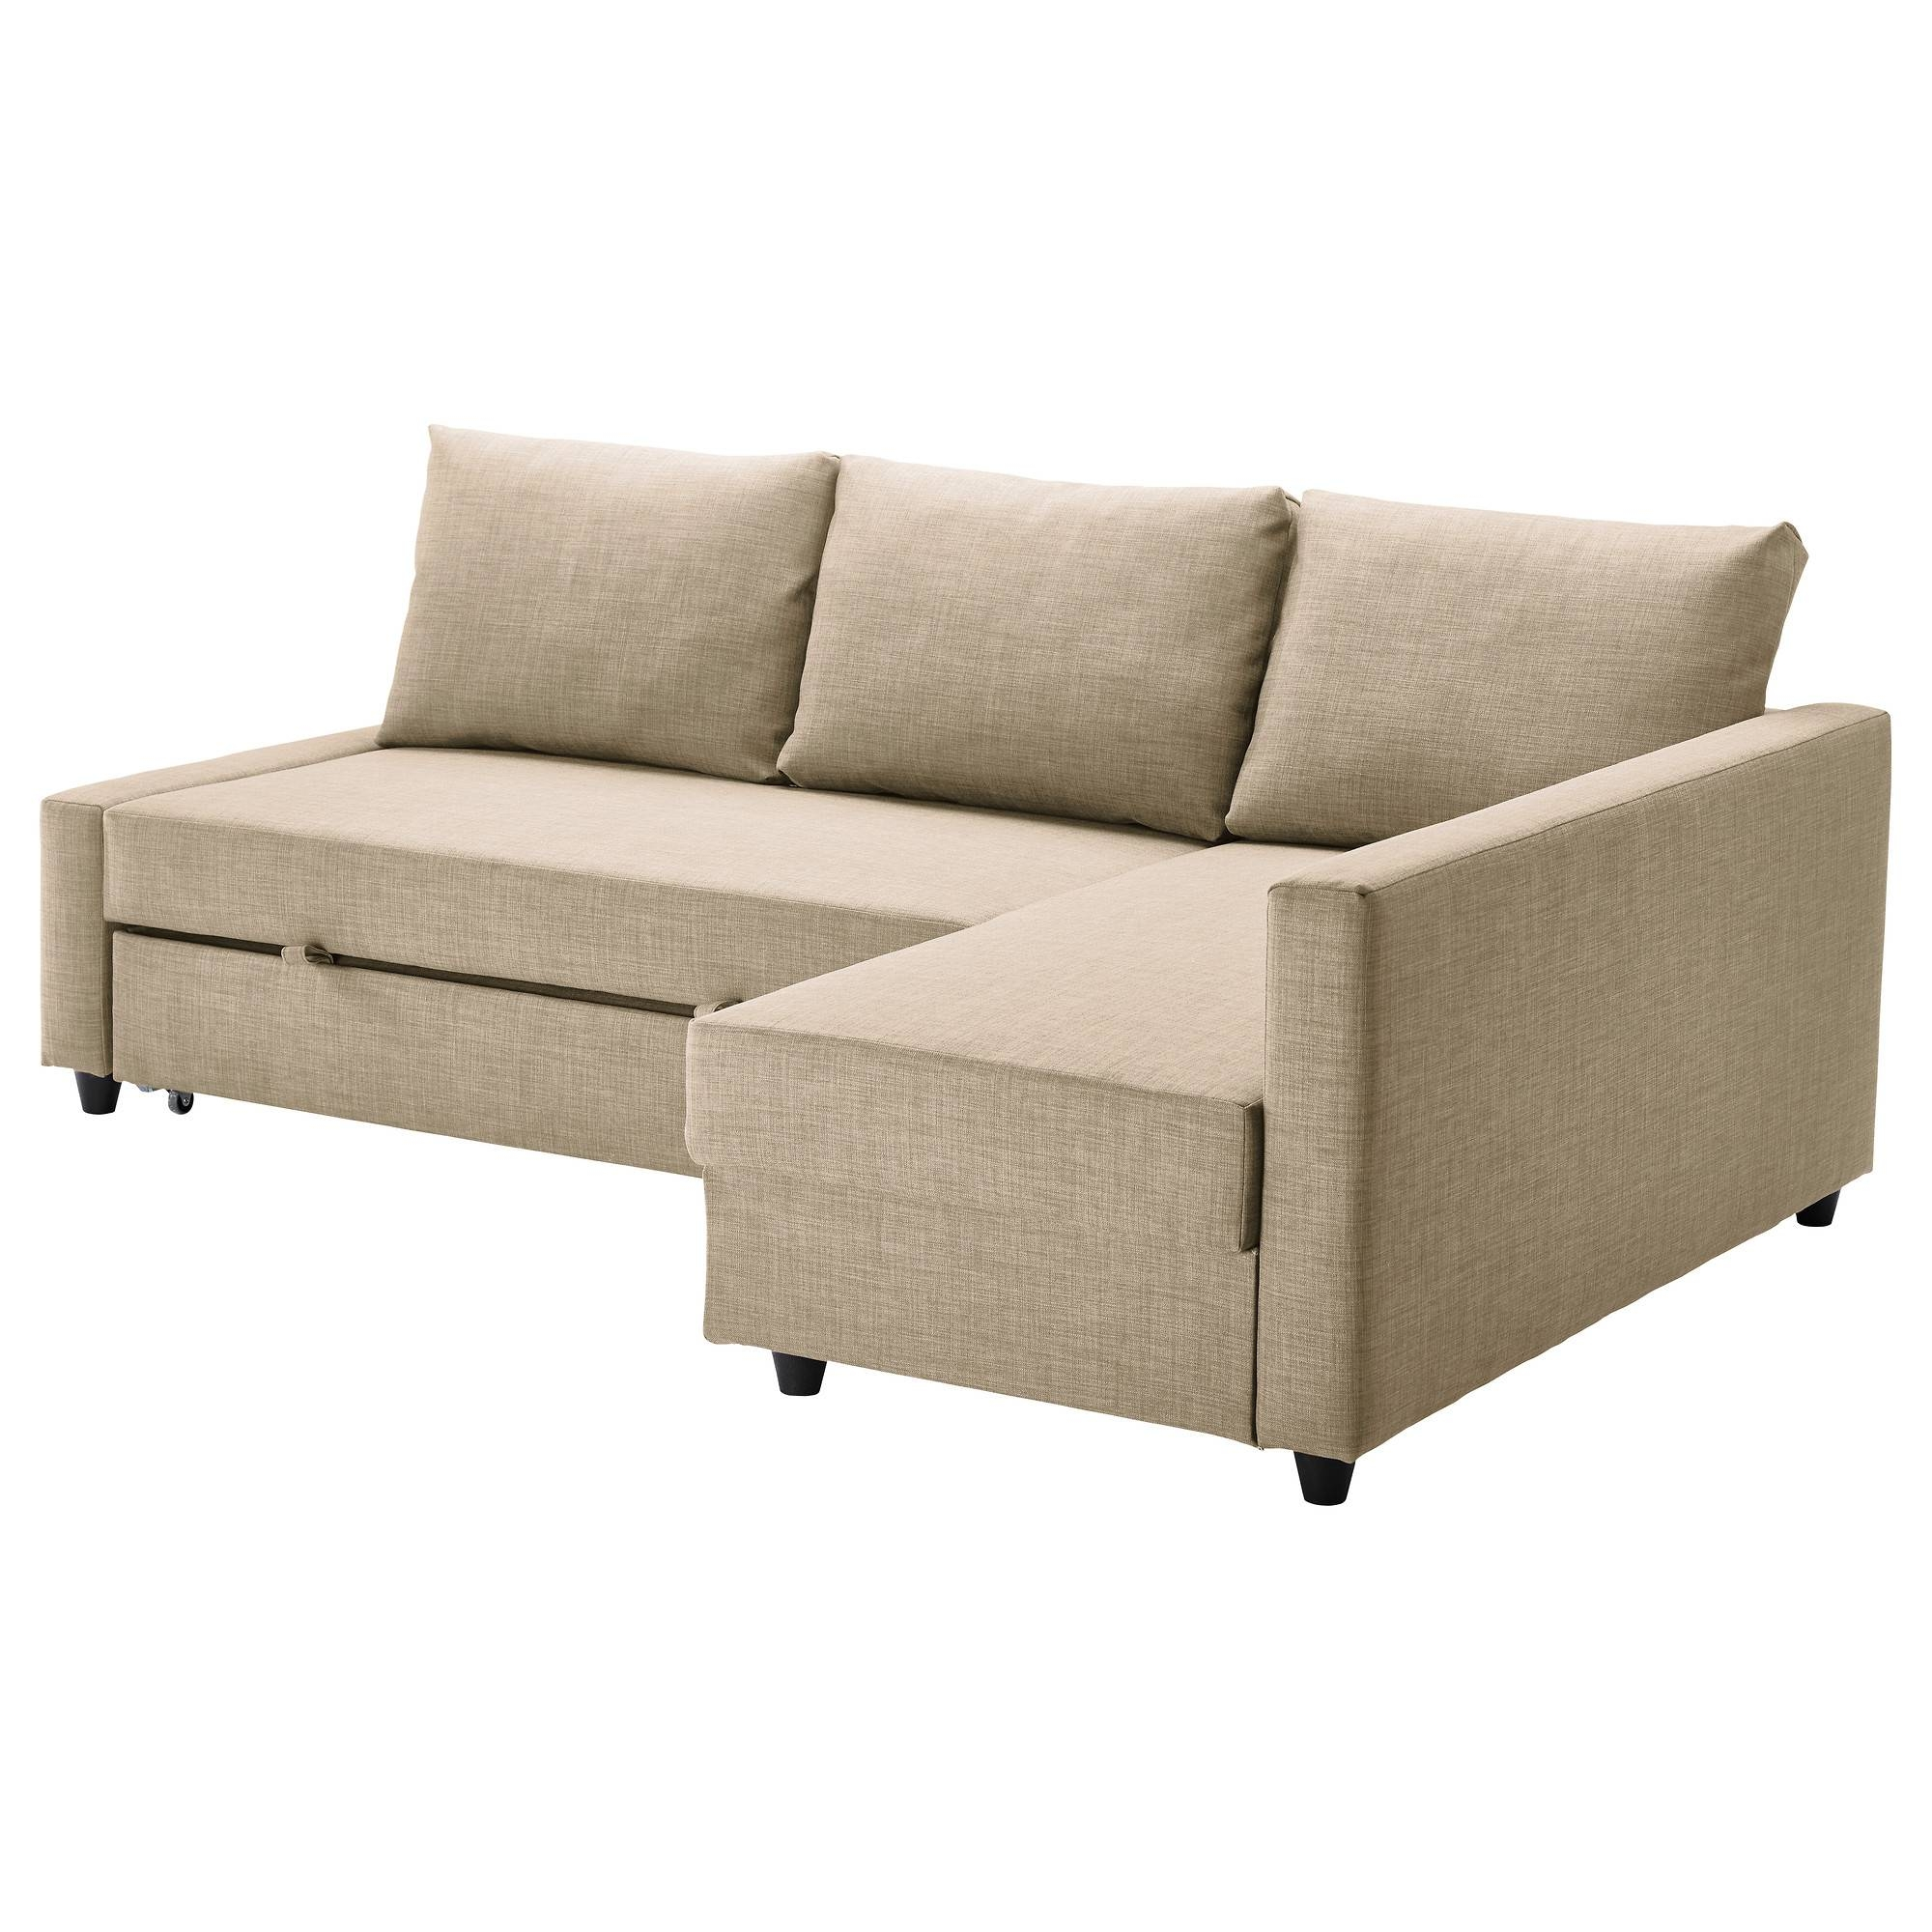 Best 30 of Ikea Loveseat Sleeper Sofas